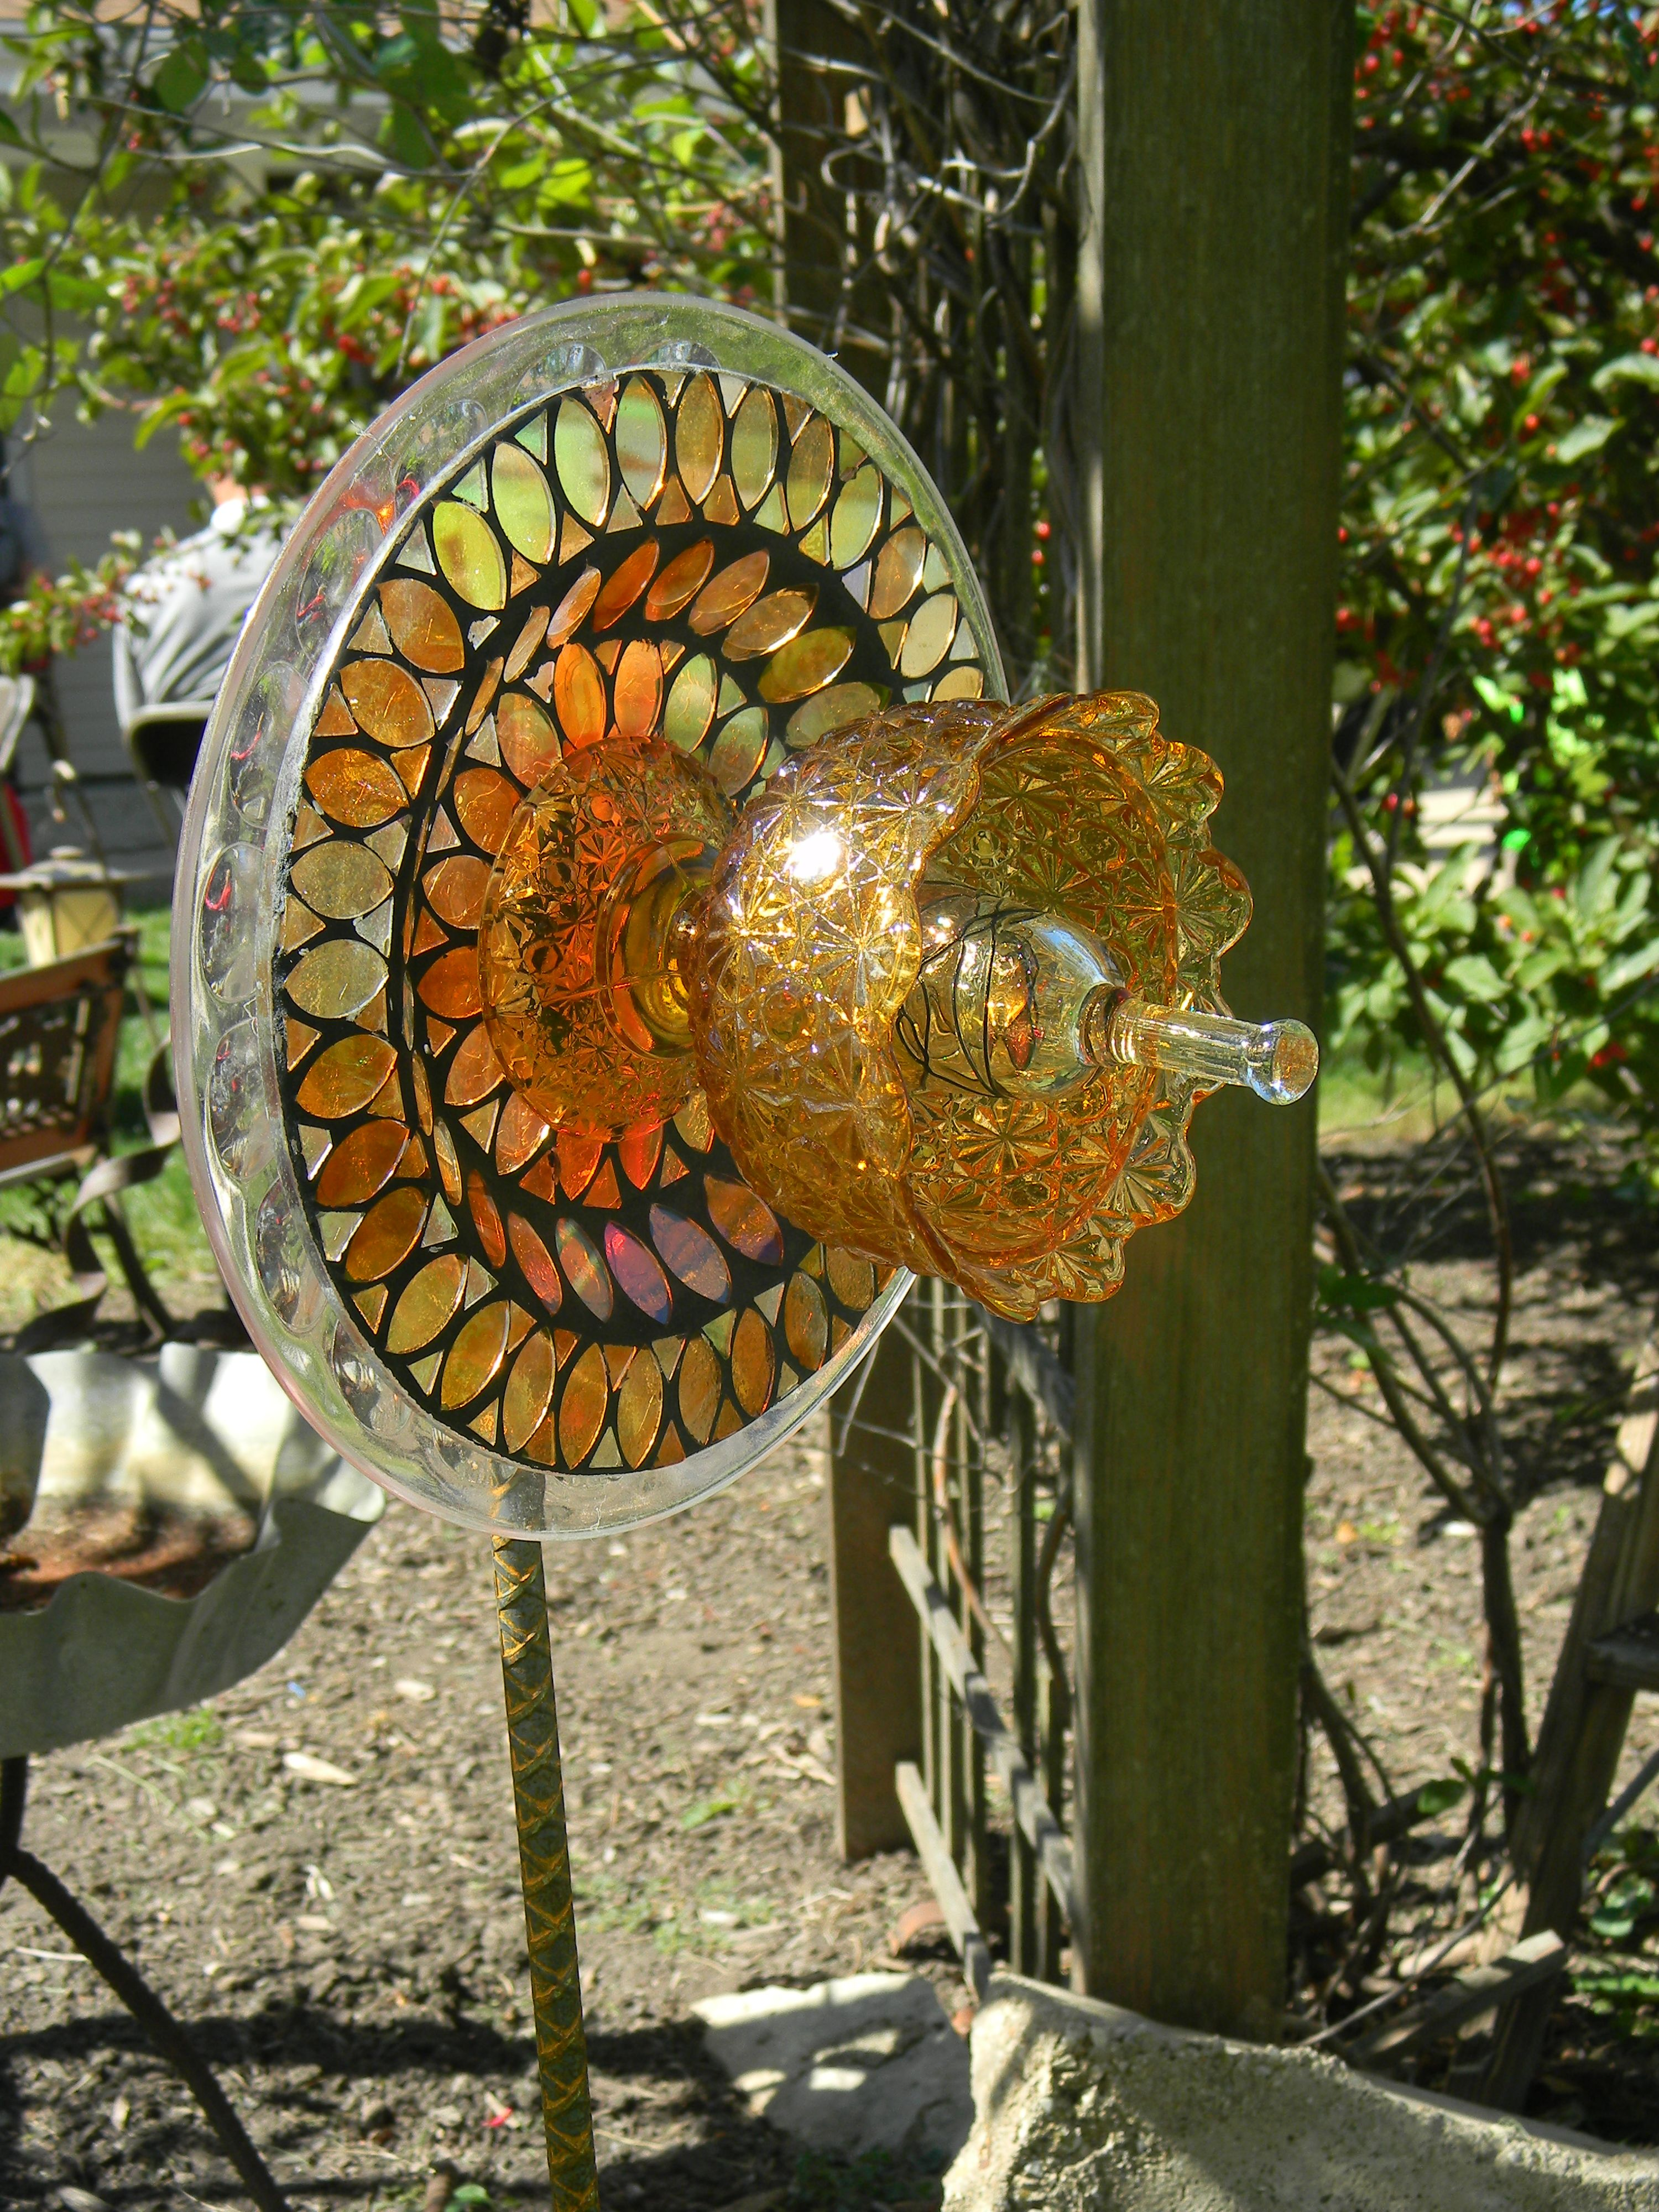 Glass garden art | Crystal garden | Pinterest | Glass garden art ...